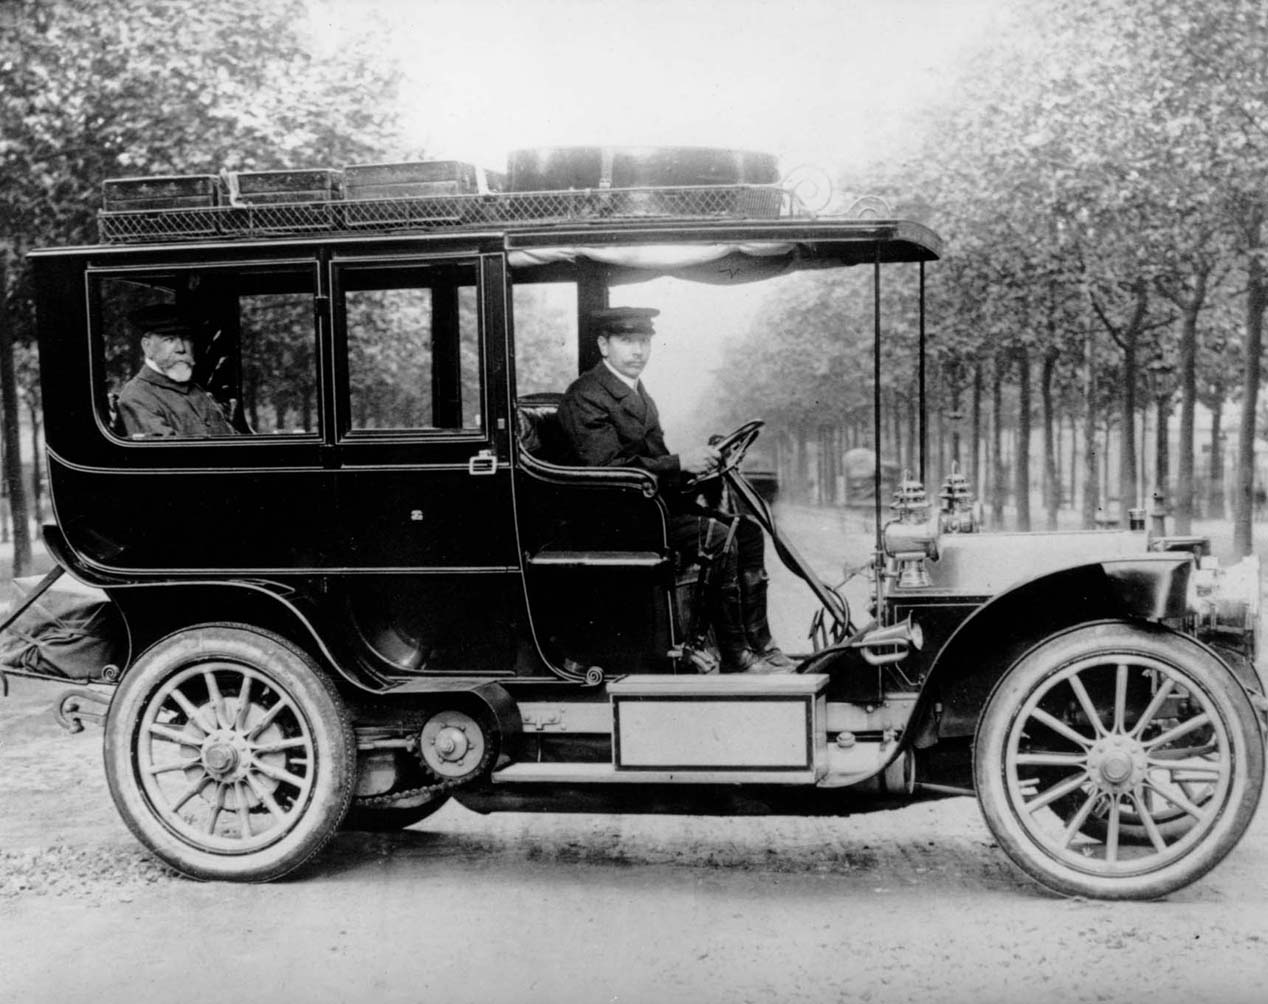 Mr. Kearney in his Mercedes-Benz Limousine